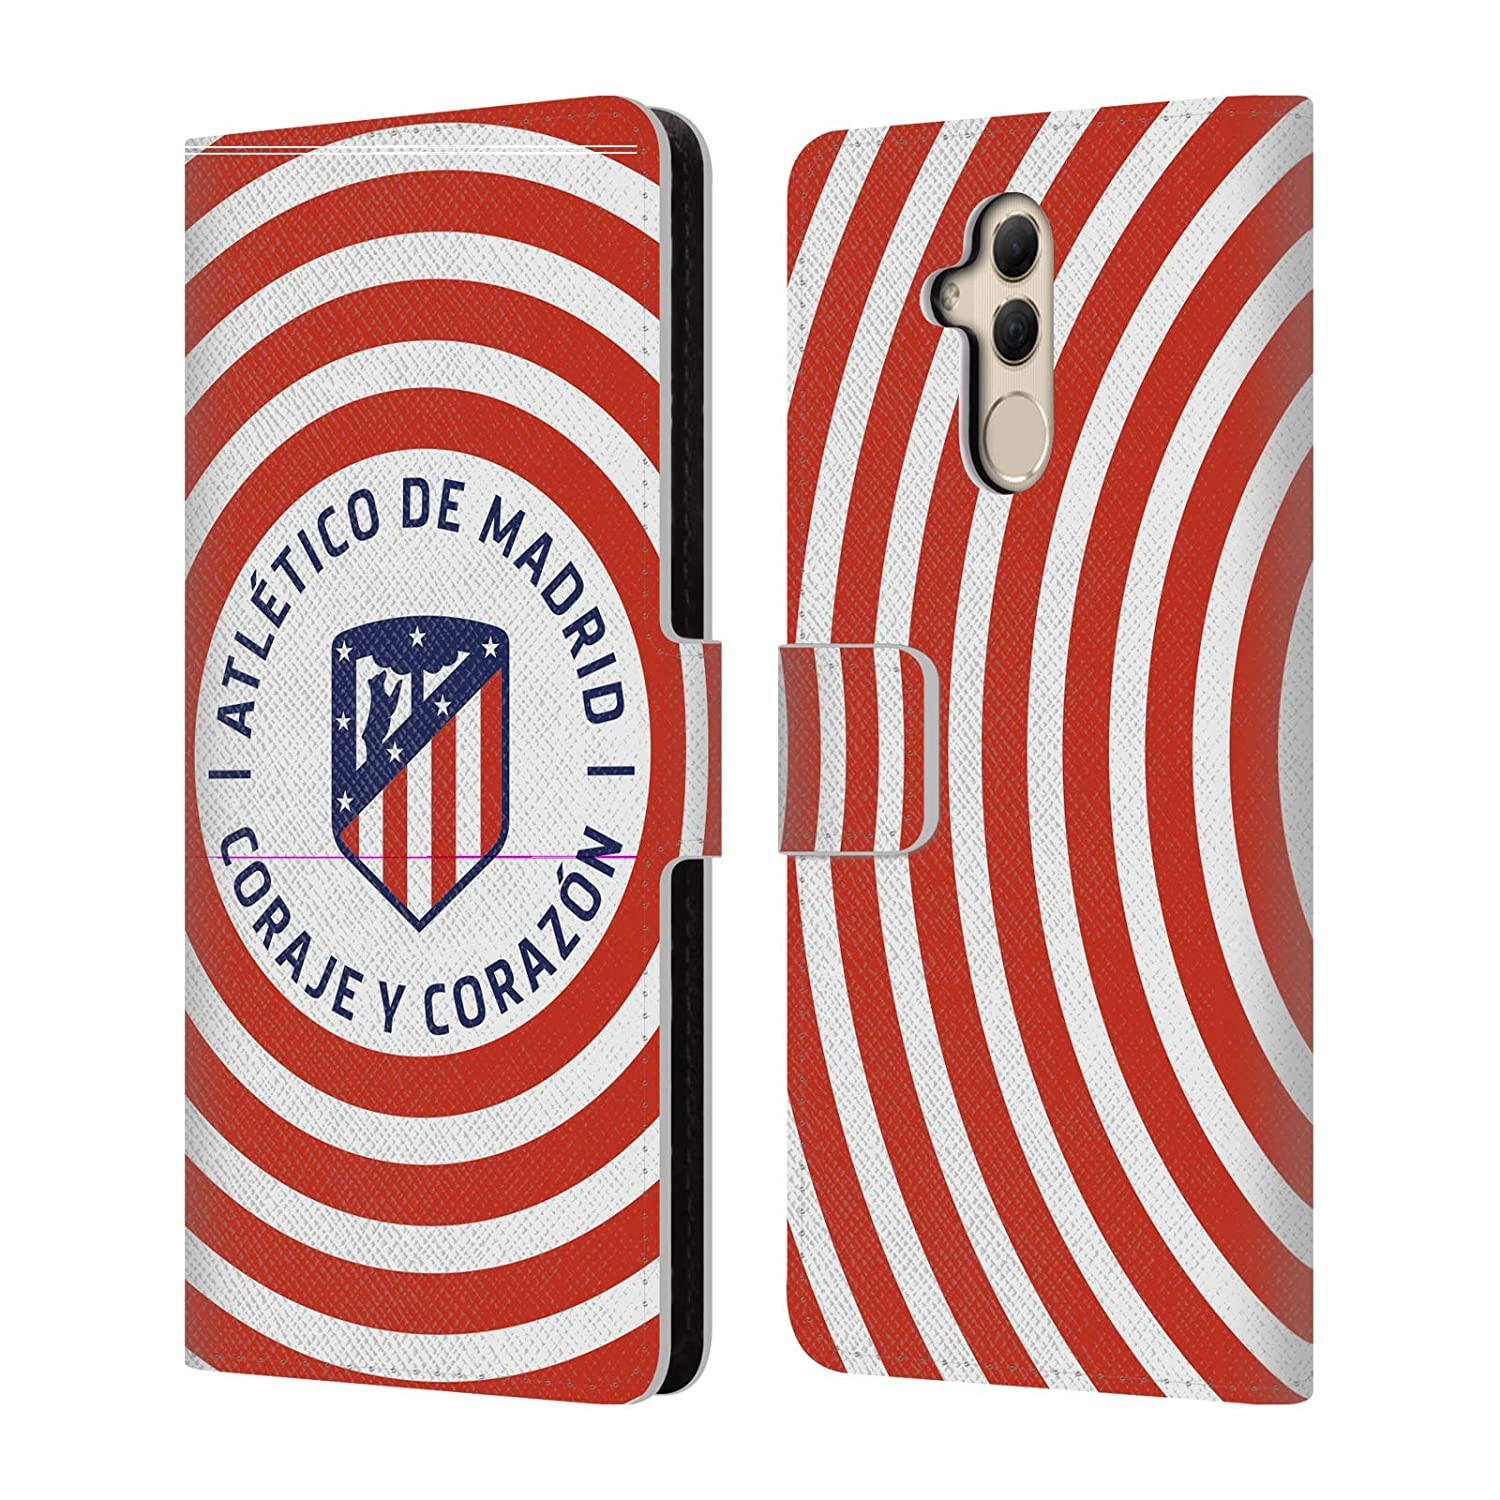 Amazon.com: Official Atletico Madrid 1903 2017/18 Crest ...